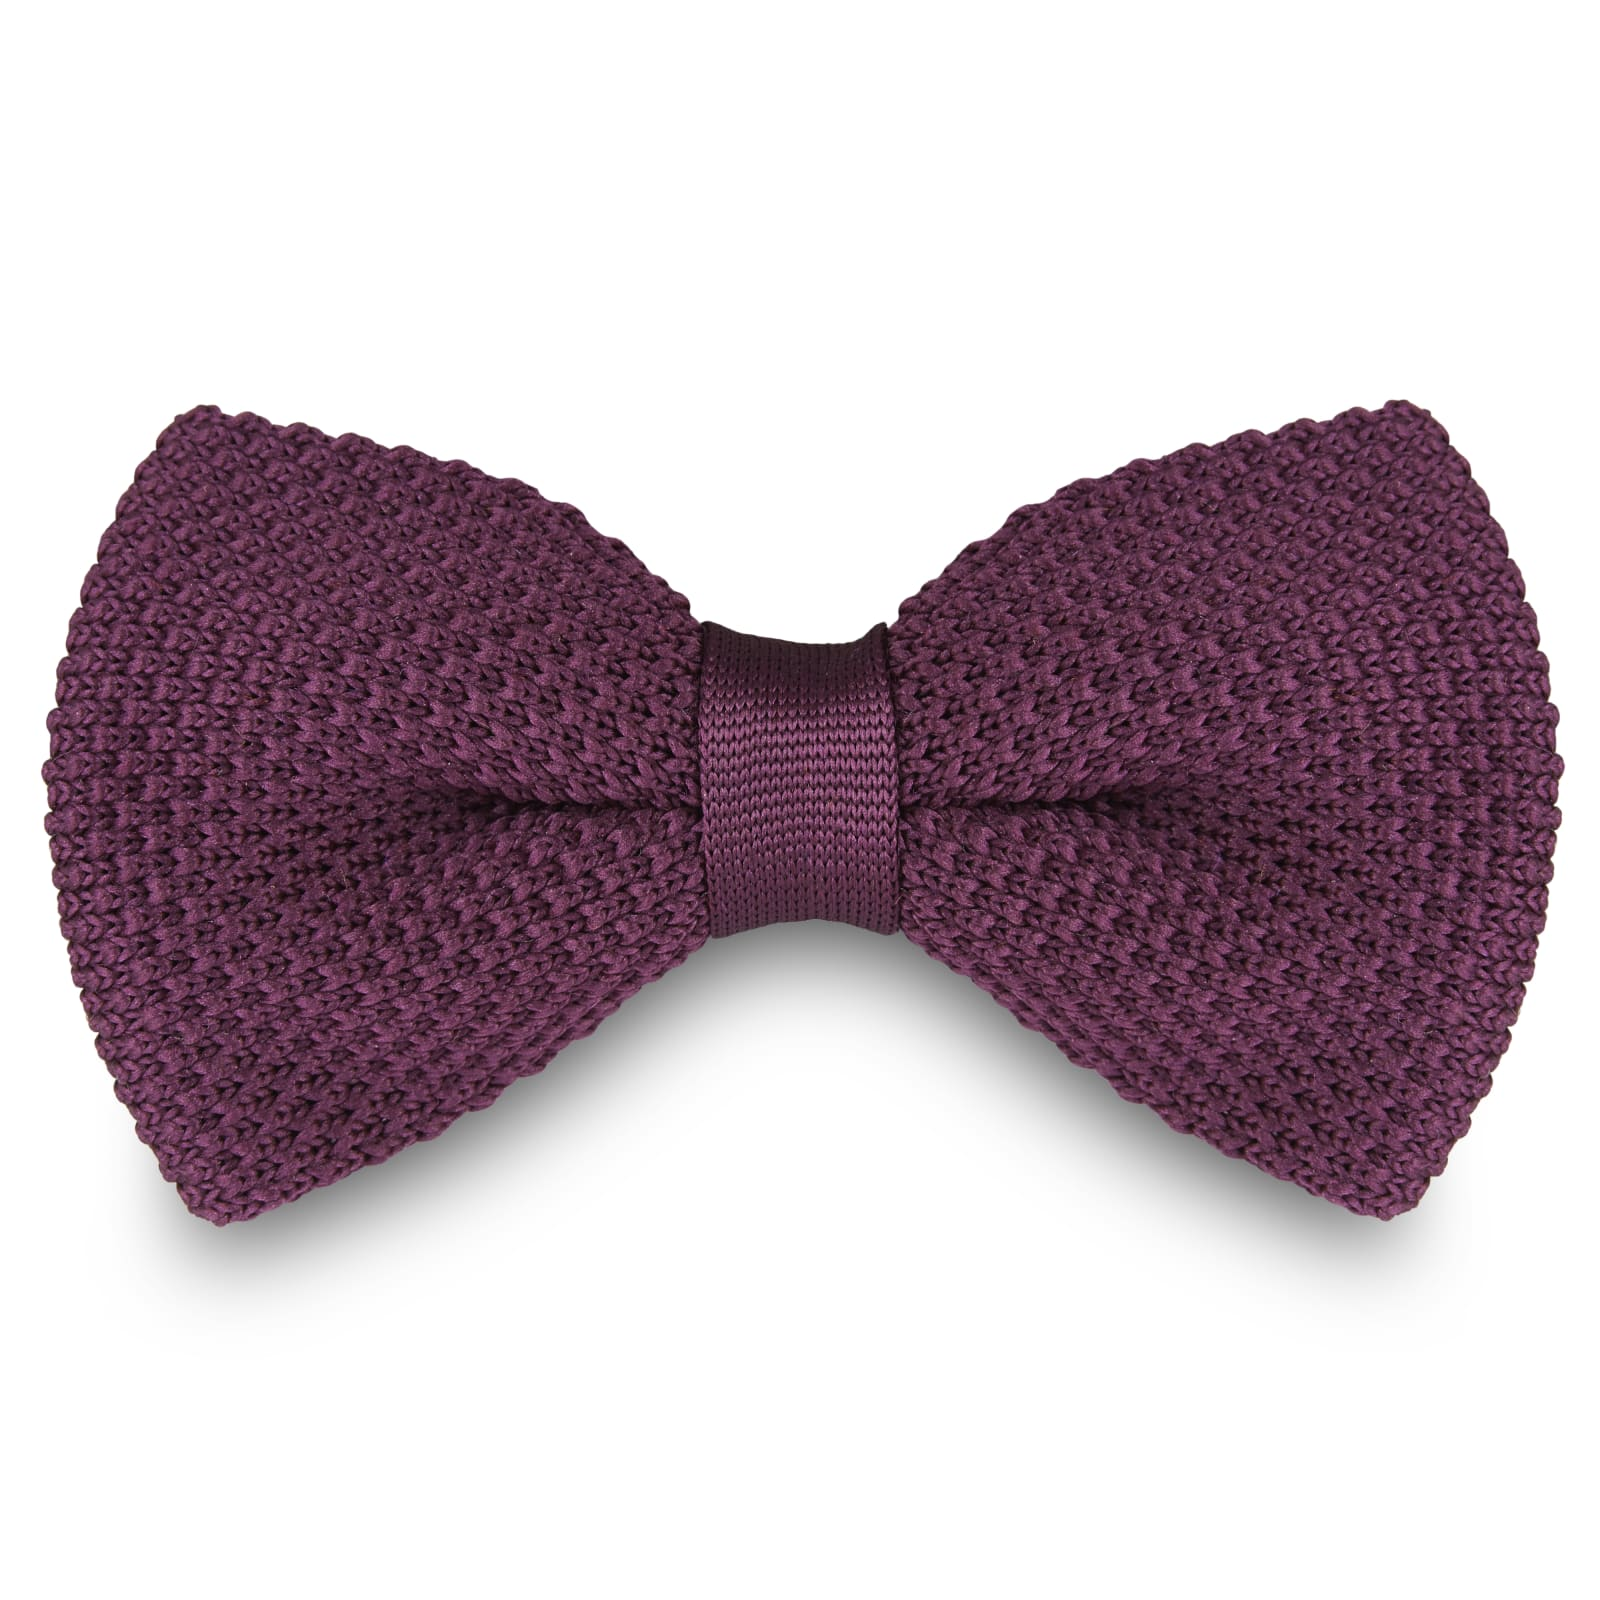 KNITTED PURPLE BOW TIES